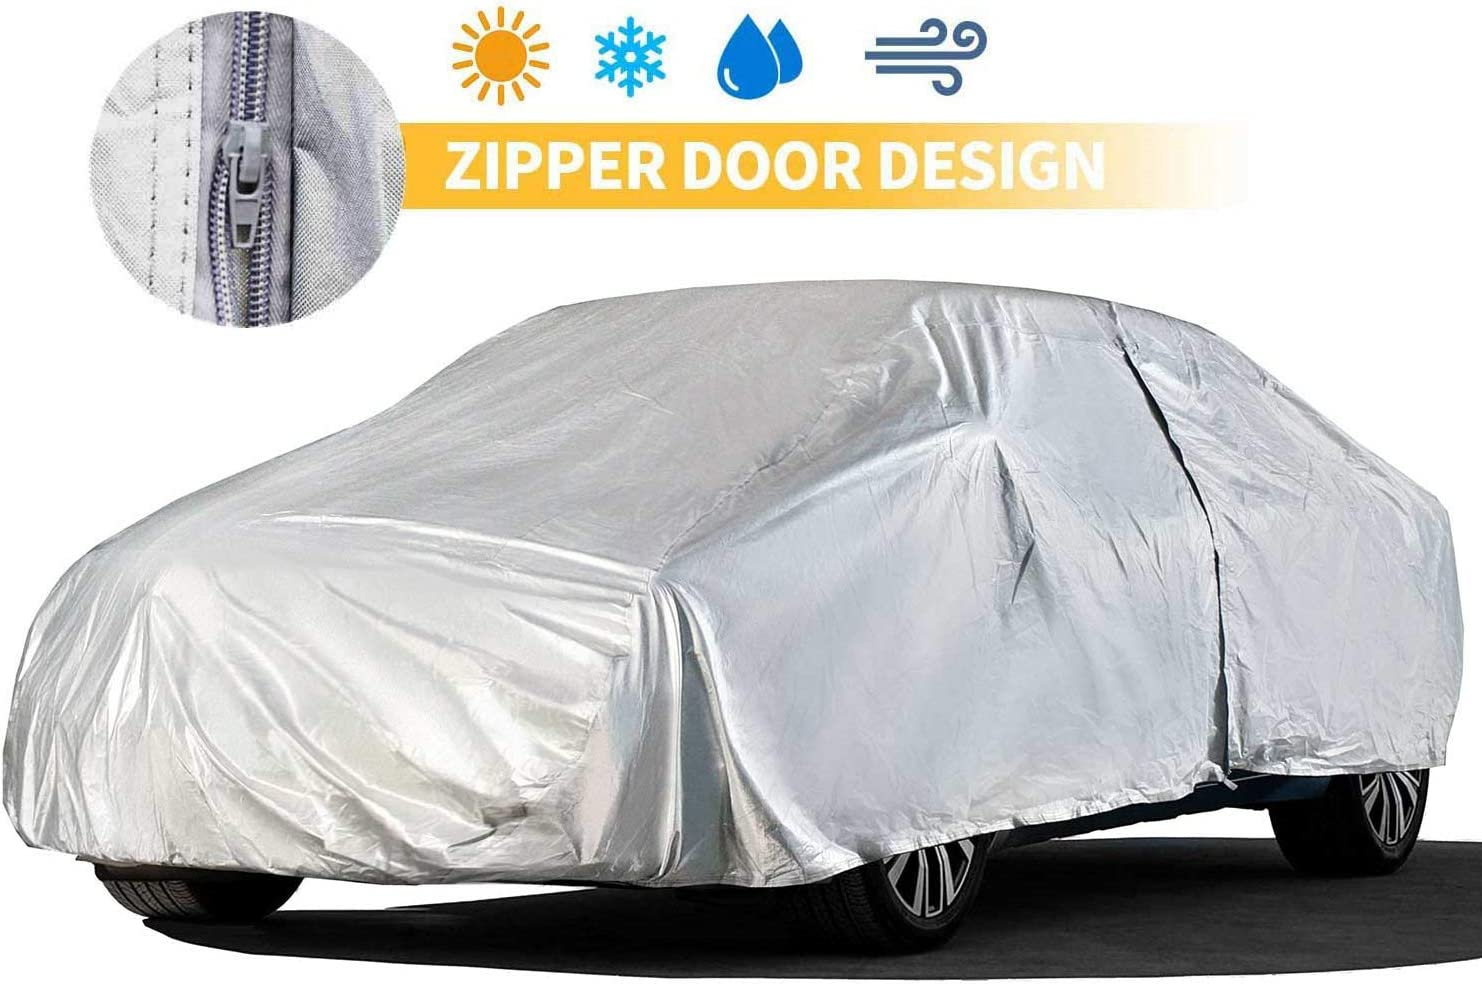 Car Covers Outdoor Silvery 5 Layers 200'' Auto Covers with Driver Door Zipper UV Protection Waterproof Windproof Dust-Proof Scratch Resistant Outdoor/Indoor Universal Car Covers for Sedan